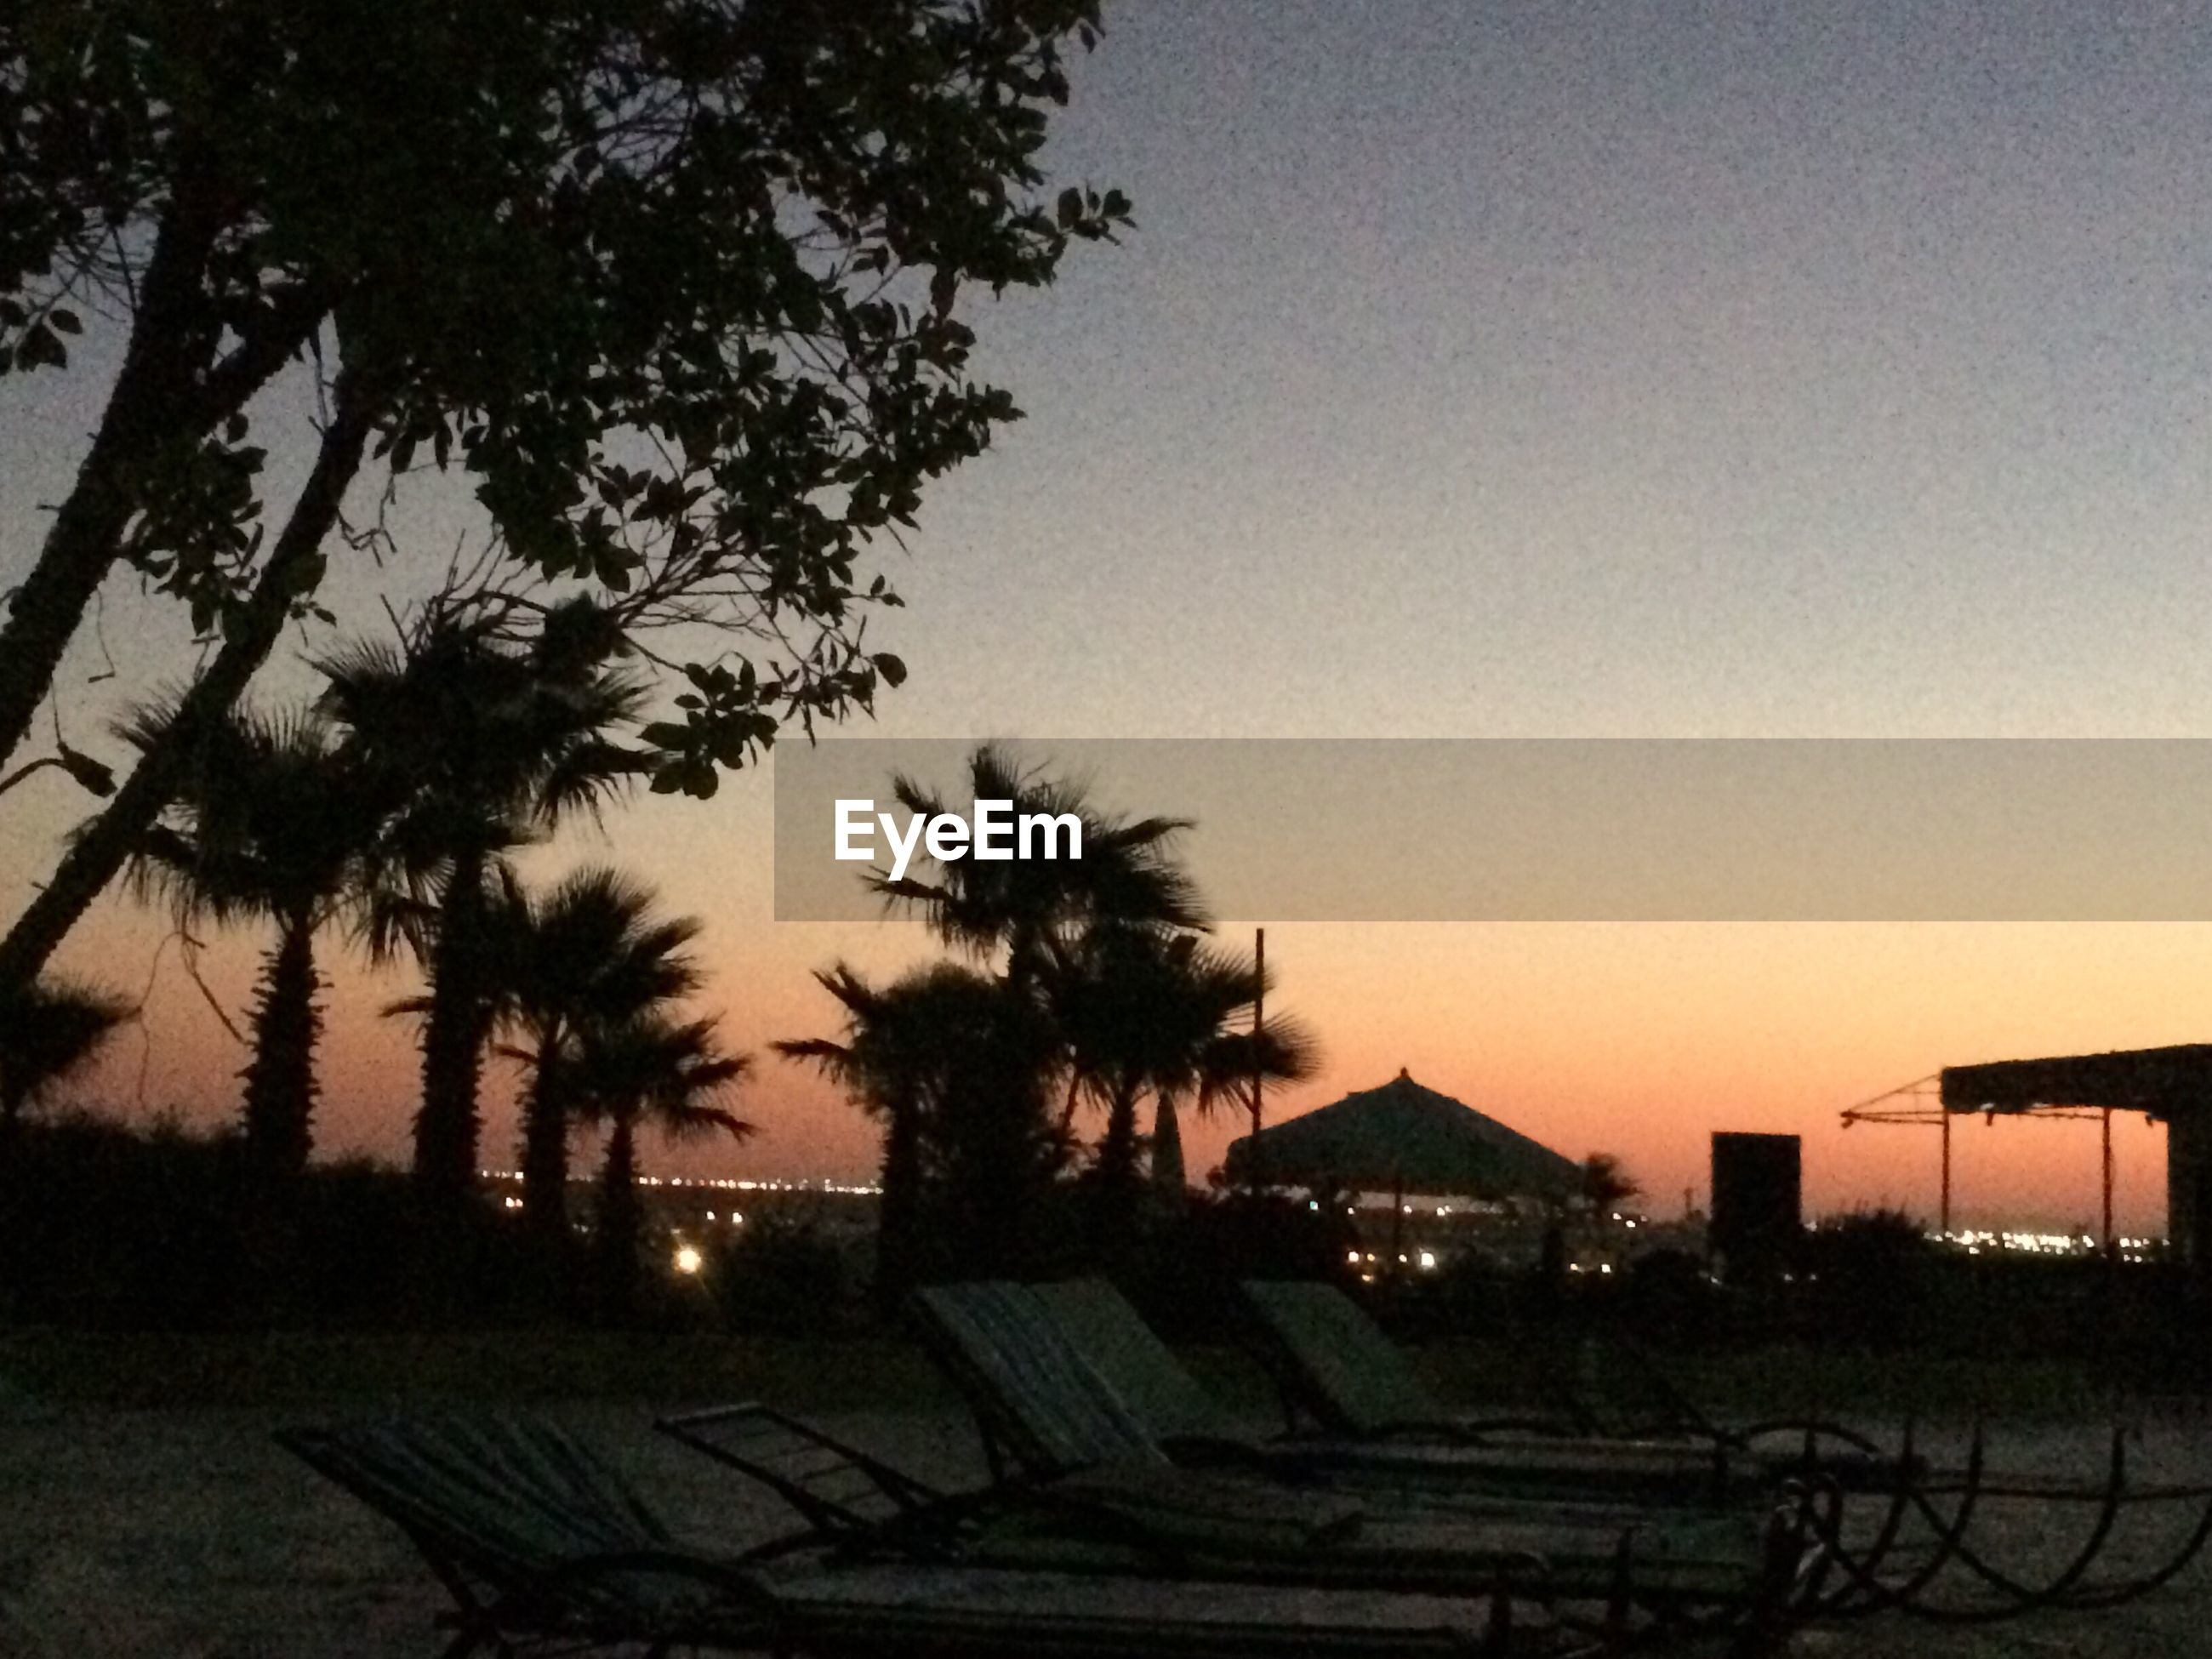 tree, sunset, no people, sky, nature, built structure, palm tree, tranquility, growth, building exterior, beach, beauty in nature, outdoors, architecture, day